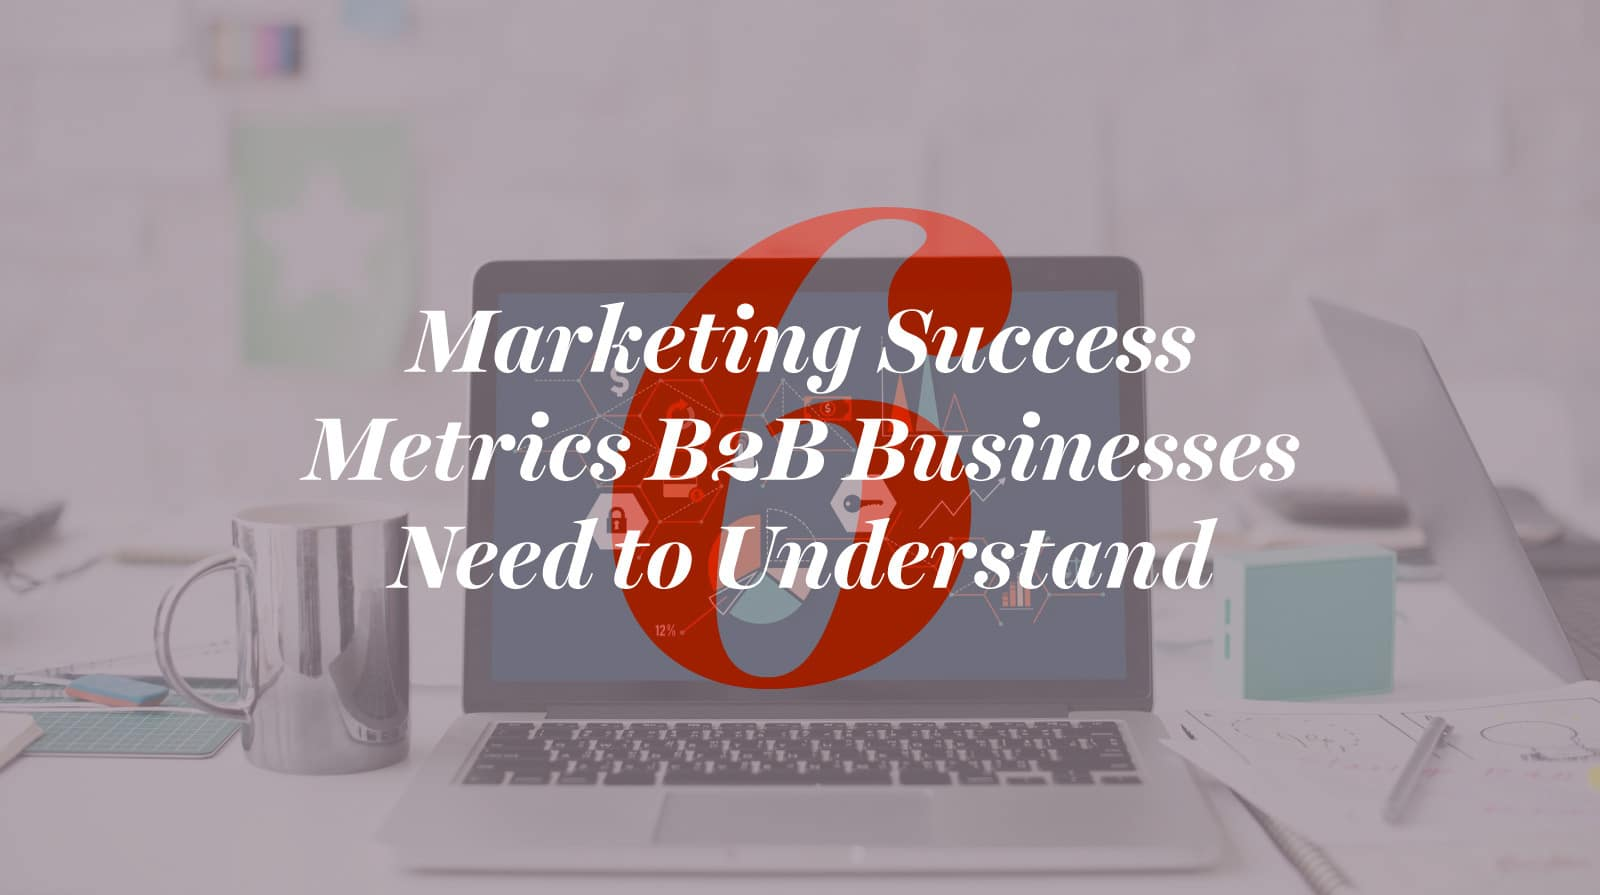 6 Markeing success metrics b2b businesses need to understand